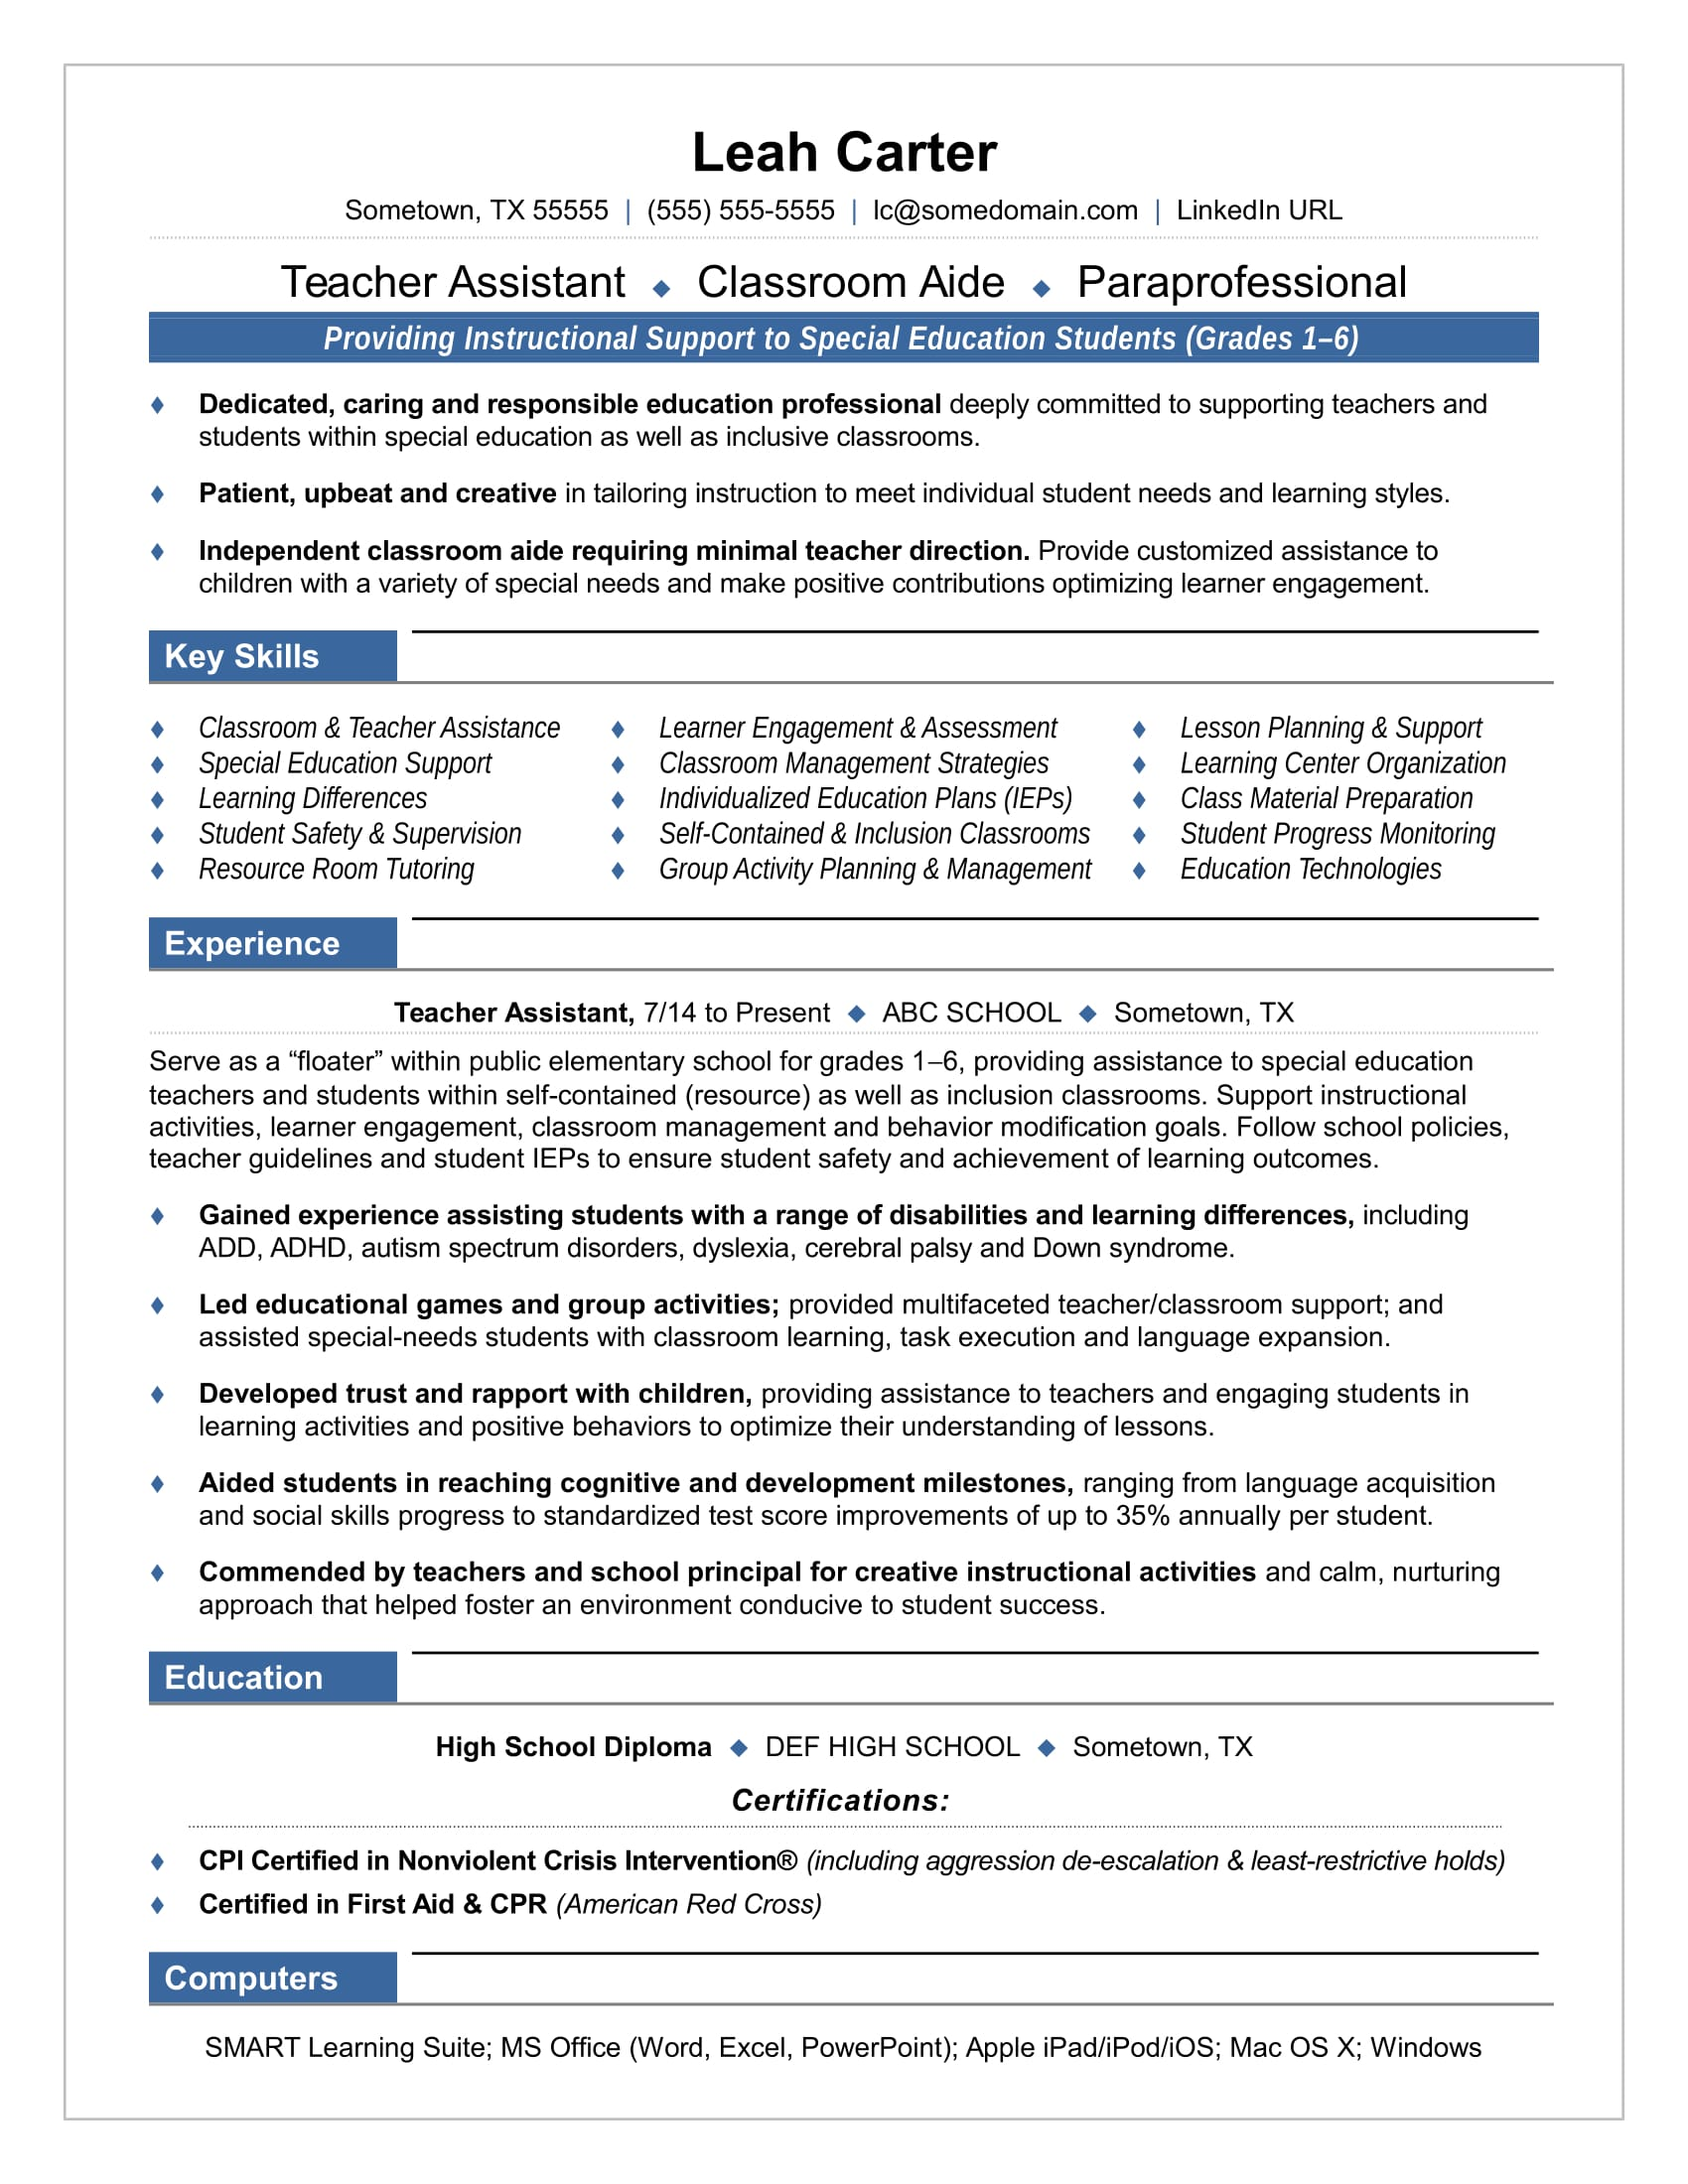 sample resume for teachers assistant in daycare center